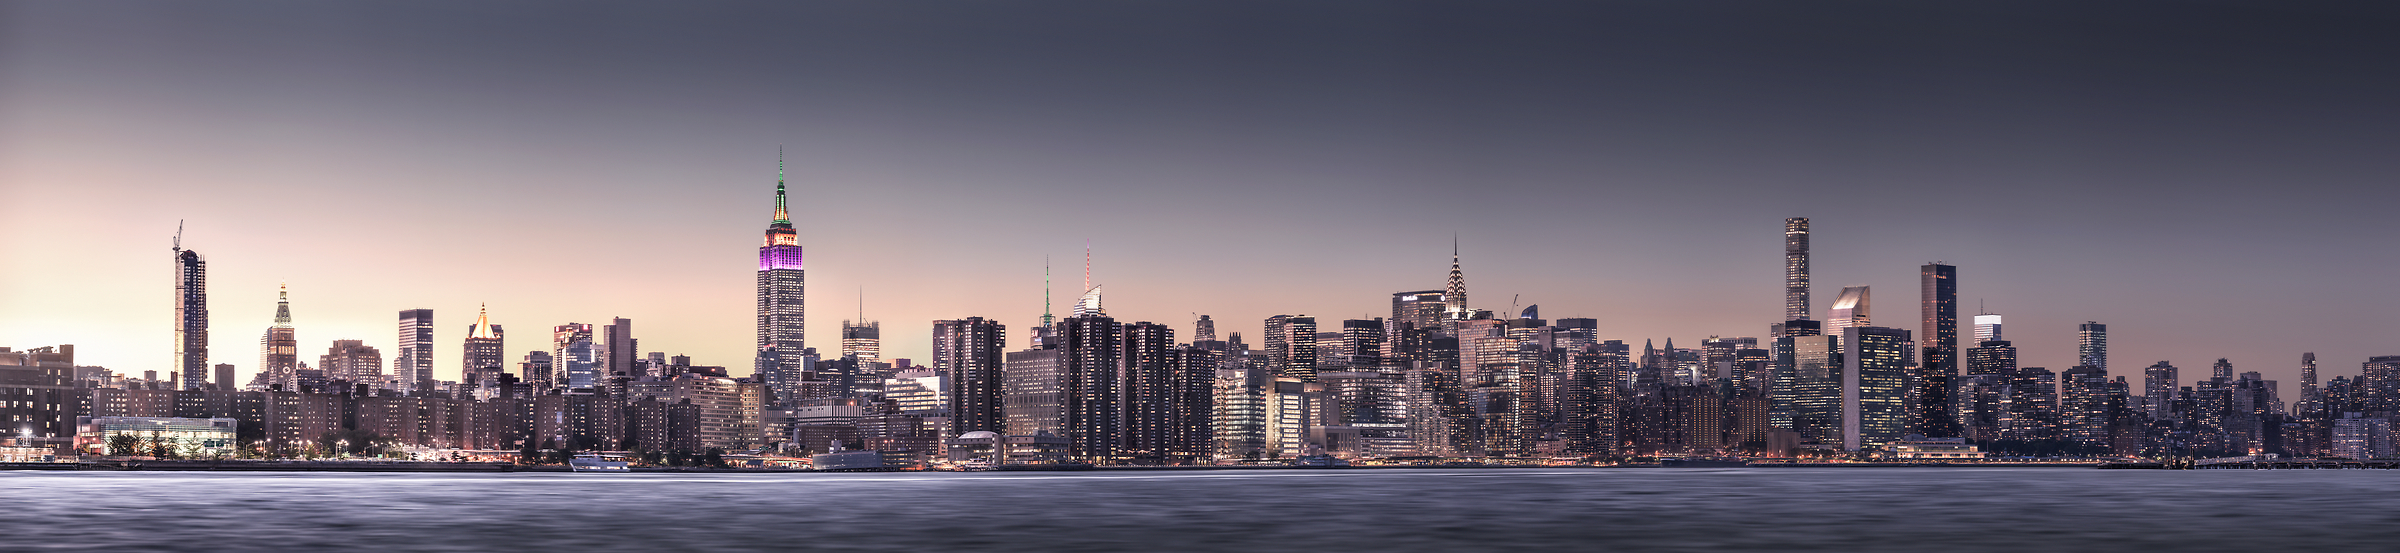 1,946 megapixels! The highest resolution cityscape VAST photo of the Midtown Manhattan city skyline in the evening sunset in New York City; created by Dan Piech